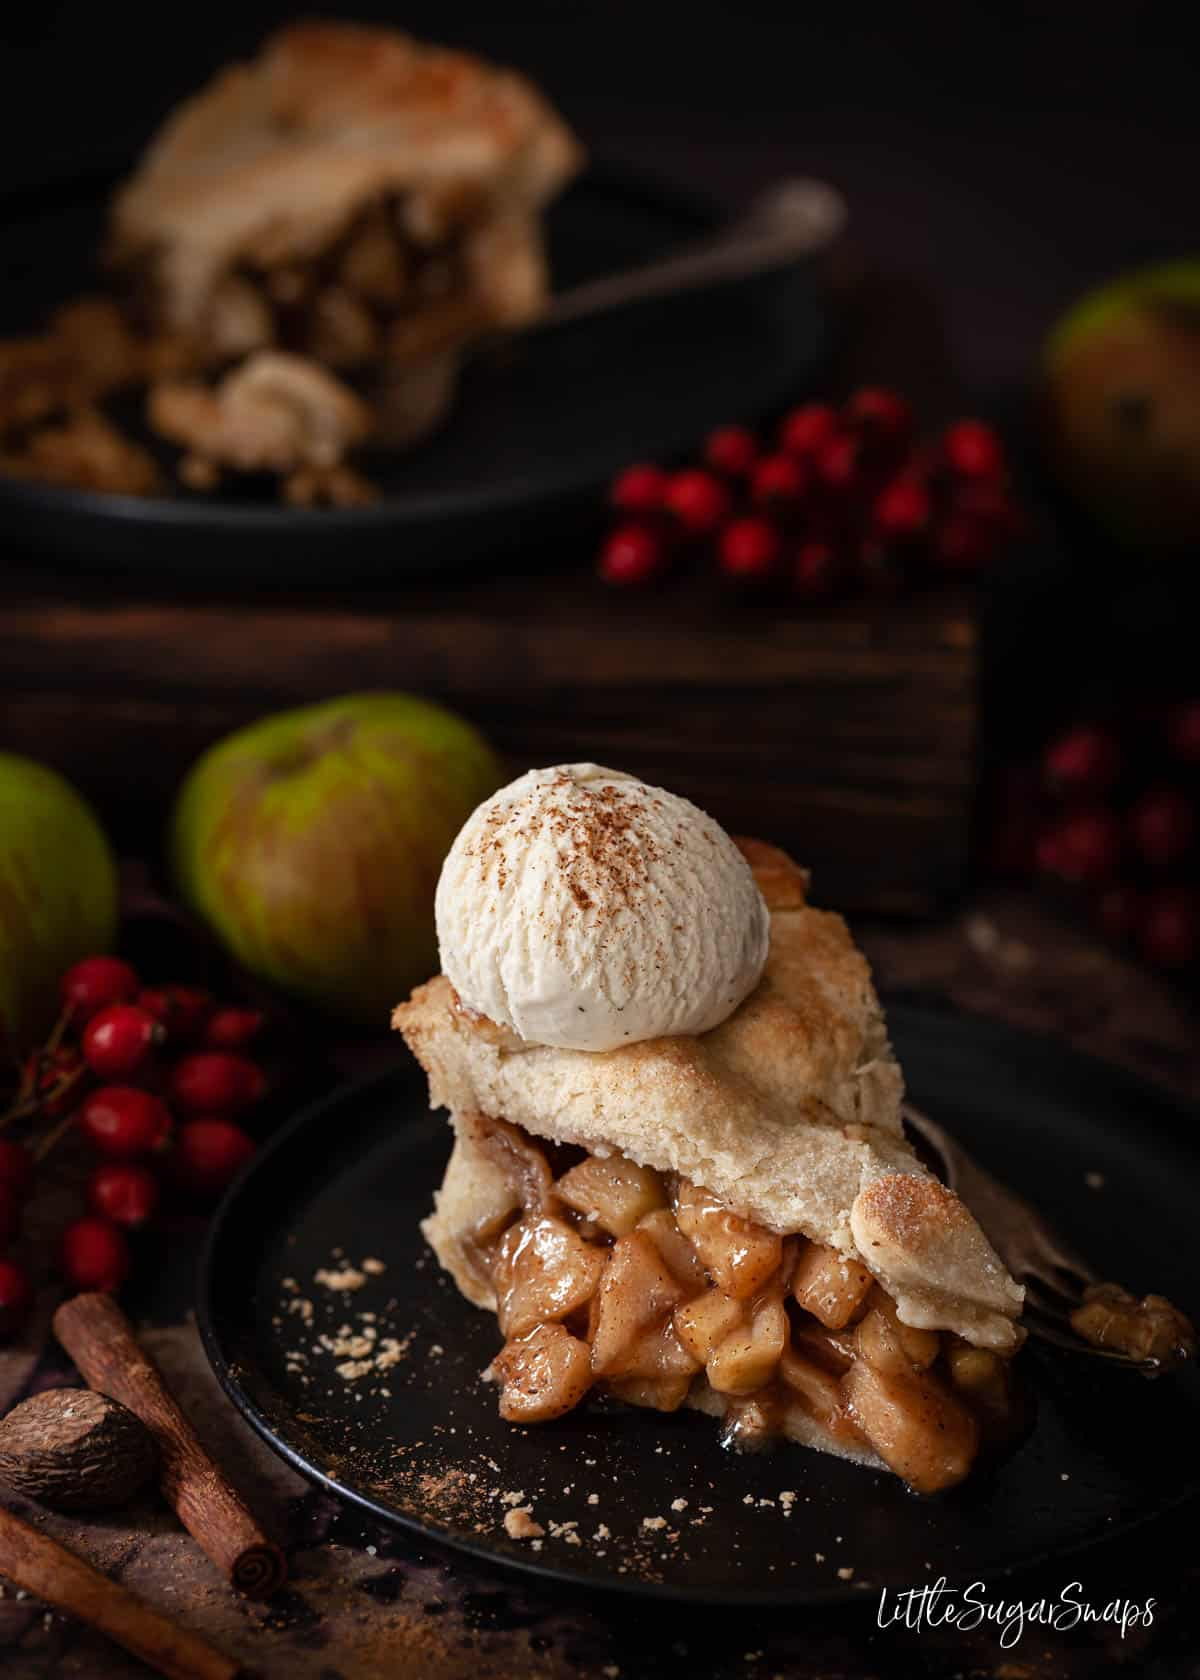 A slice of vegan apple pie with dairy free ice cream on top